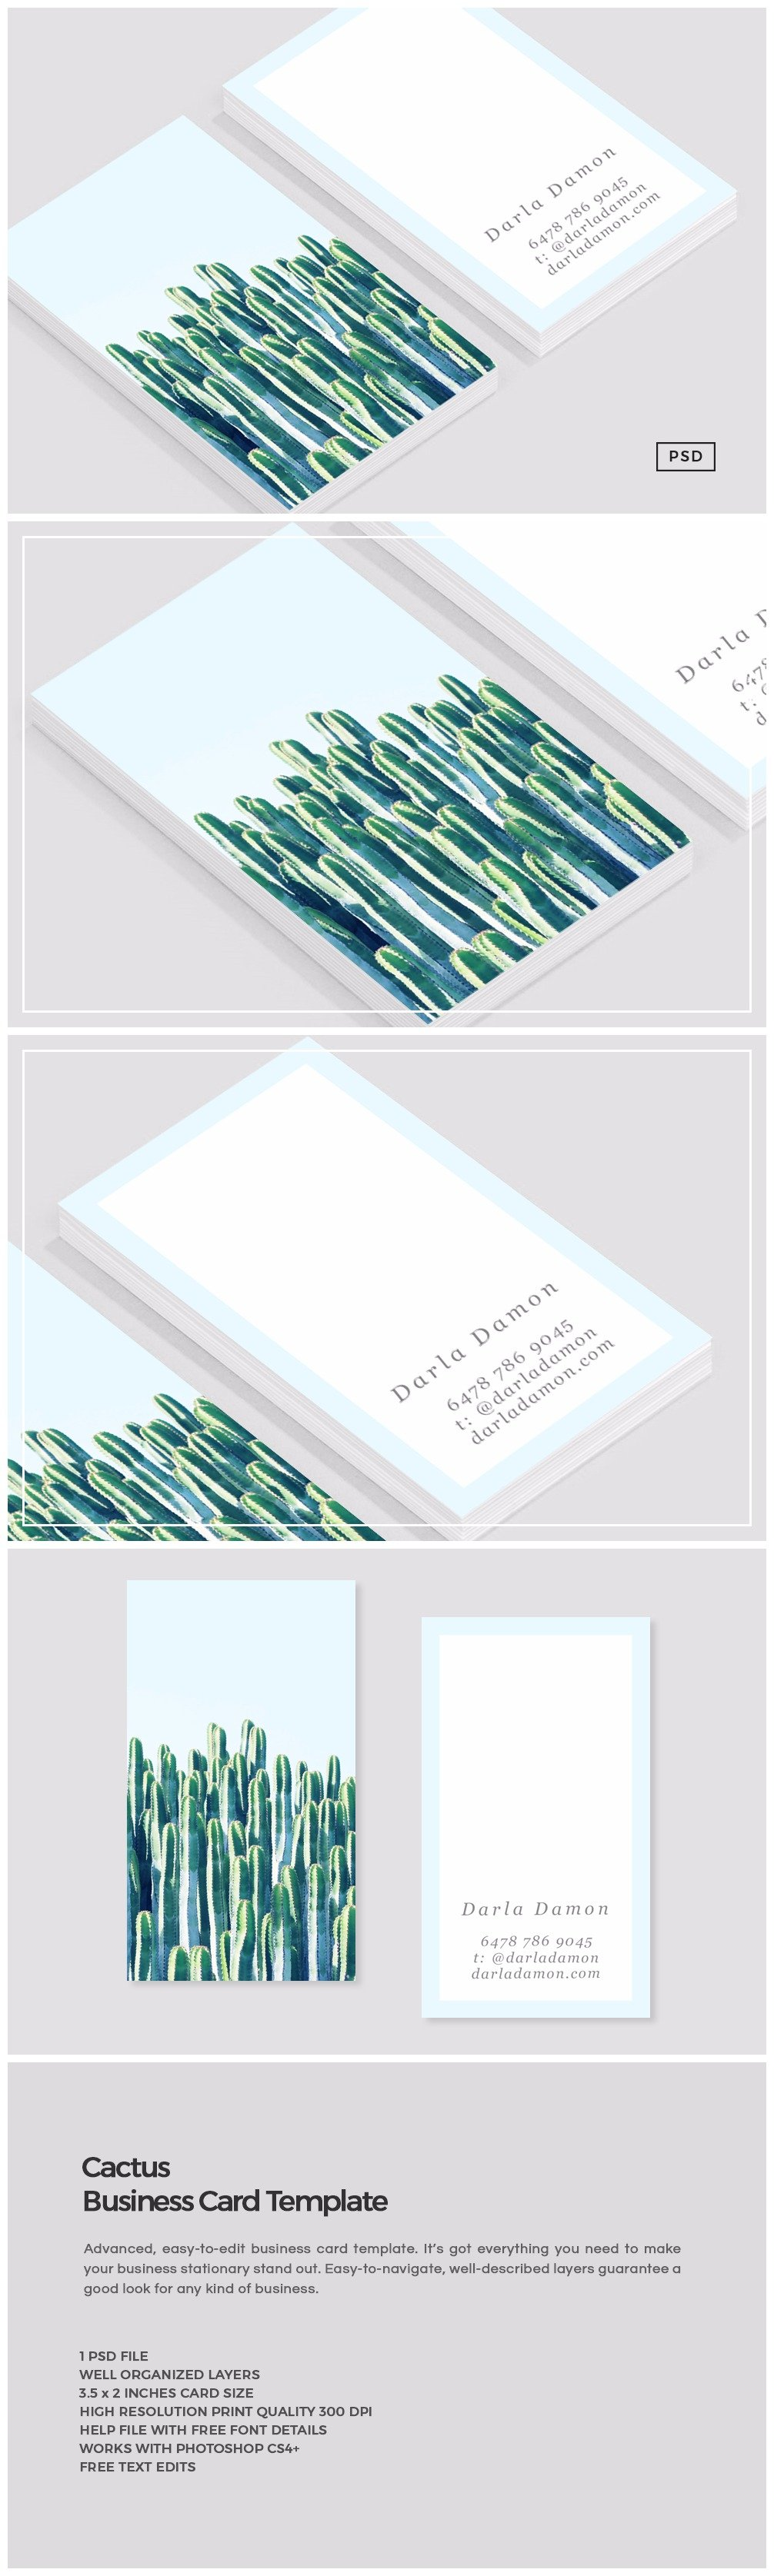 Cactus business card template business card templates creative cactus business card template business card templates creative market reheart Gallery